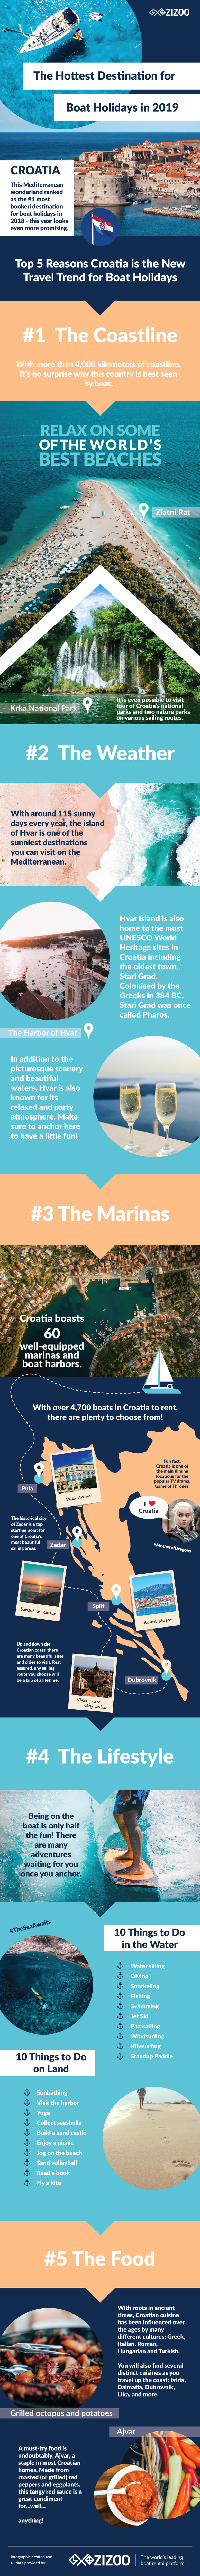 infographic-sailing-holiday-Croatia